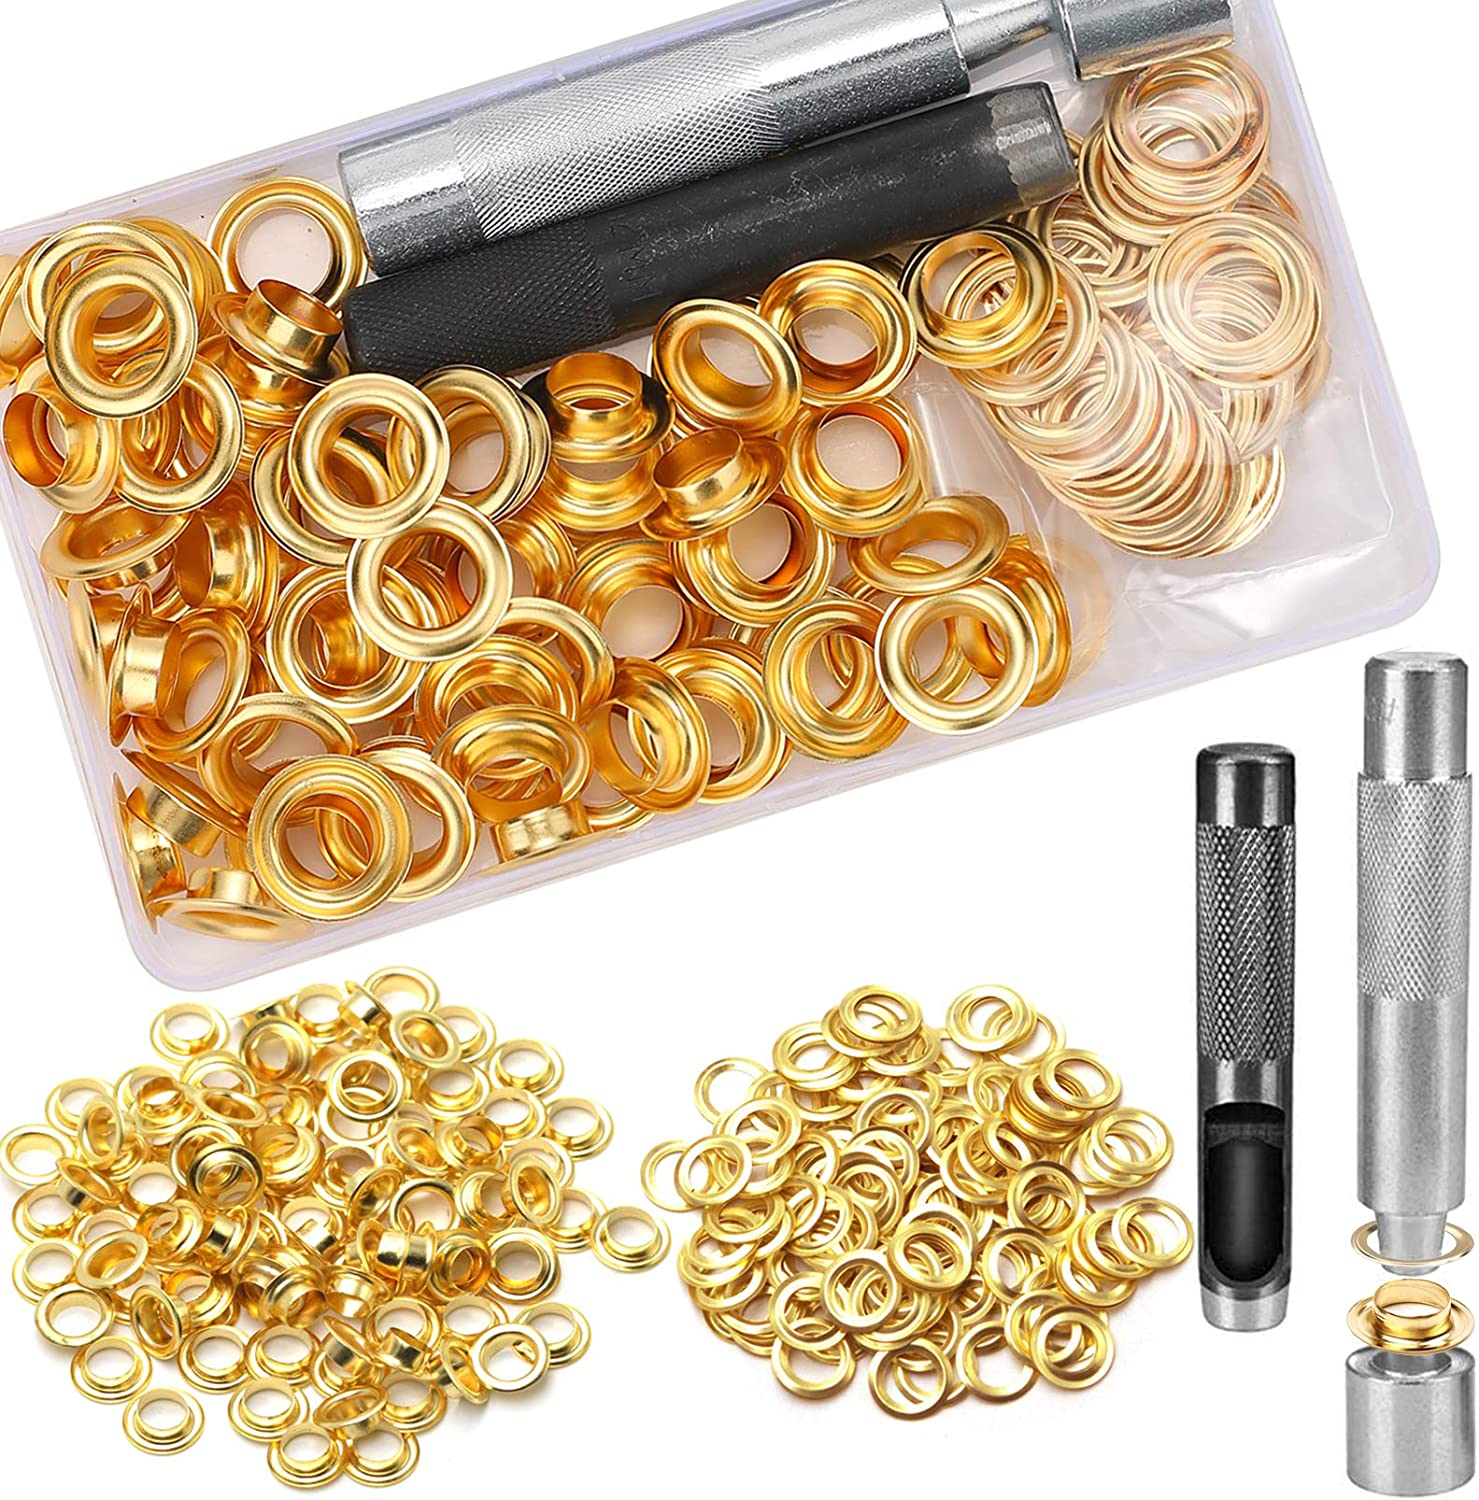 Repair and Decoration 1//2 Inch Inside Diameter 3 Colors Grommets Kit with Storage Box for Craft Making 1//2inch Grommet Kit 75 Sets Grommets Eyelets with 3 Pieces Install Tool Kit